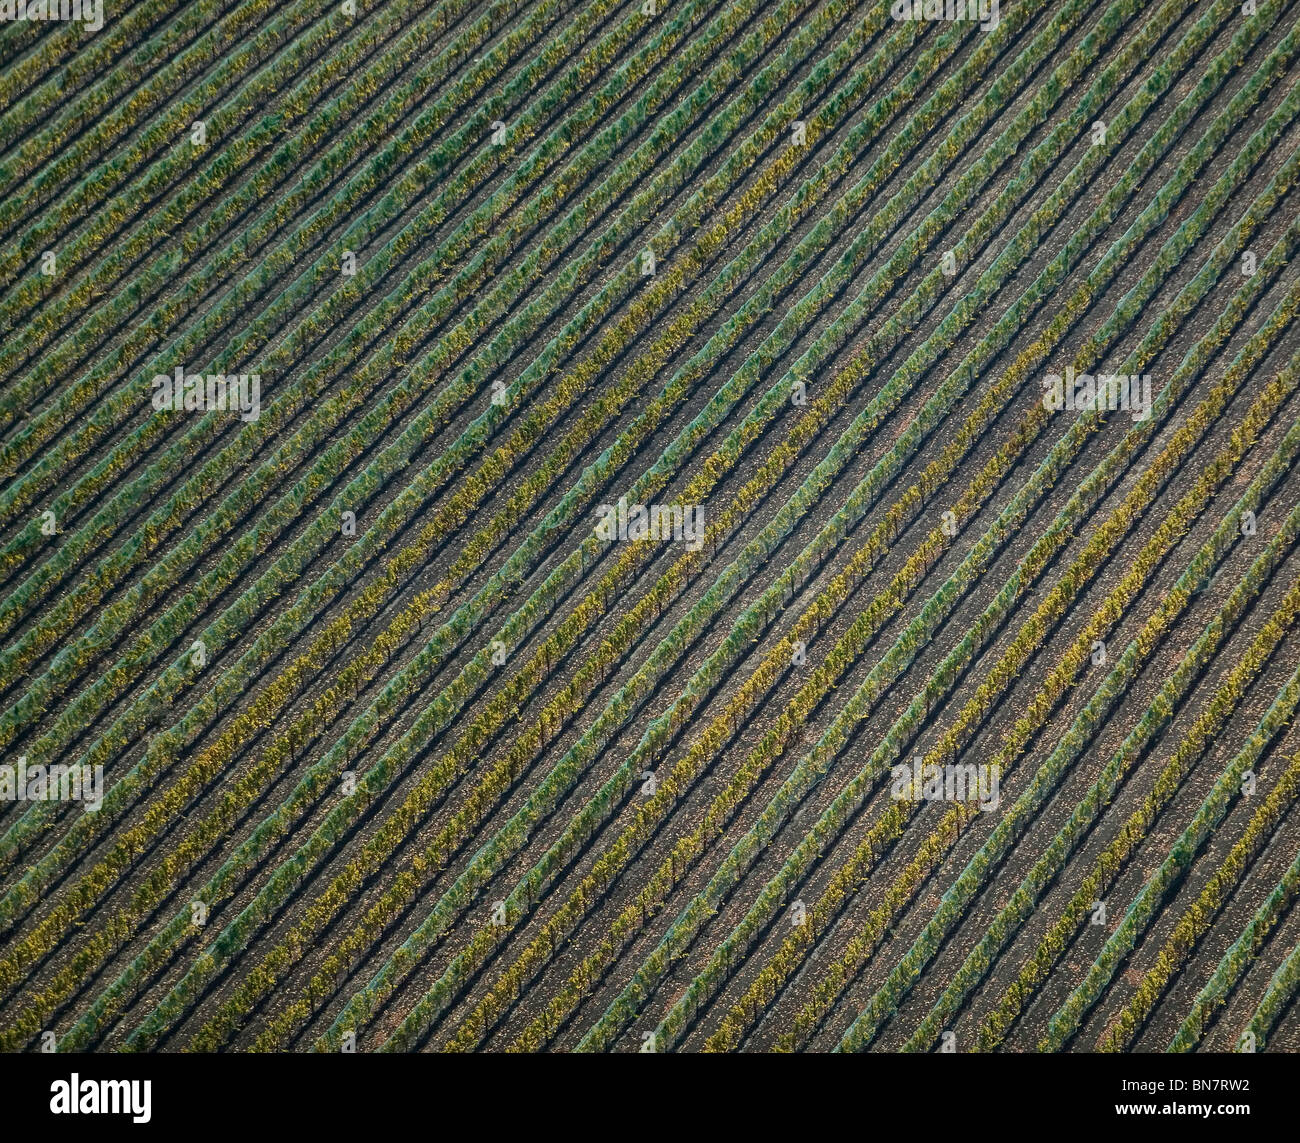 aerial view above netting over northern California vineyard protecting grapes from birds - Stock Image